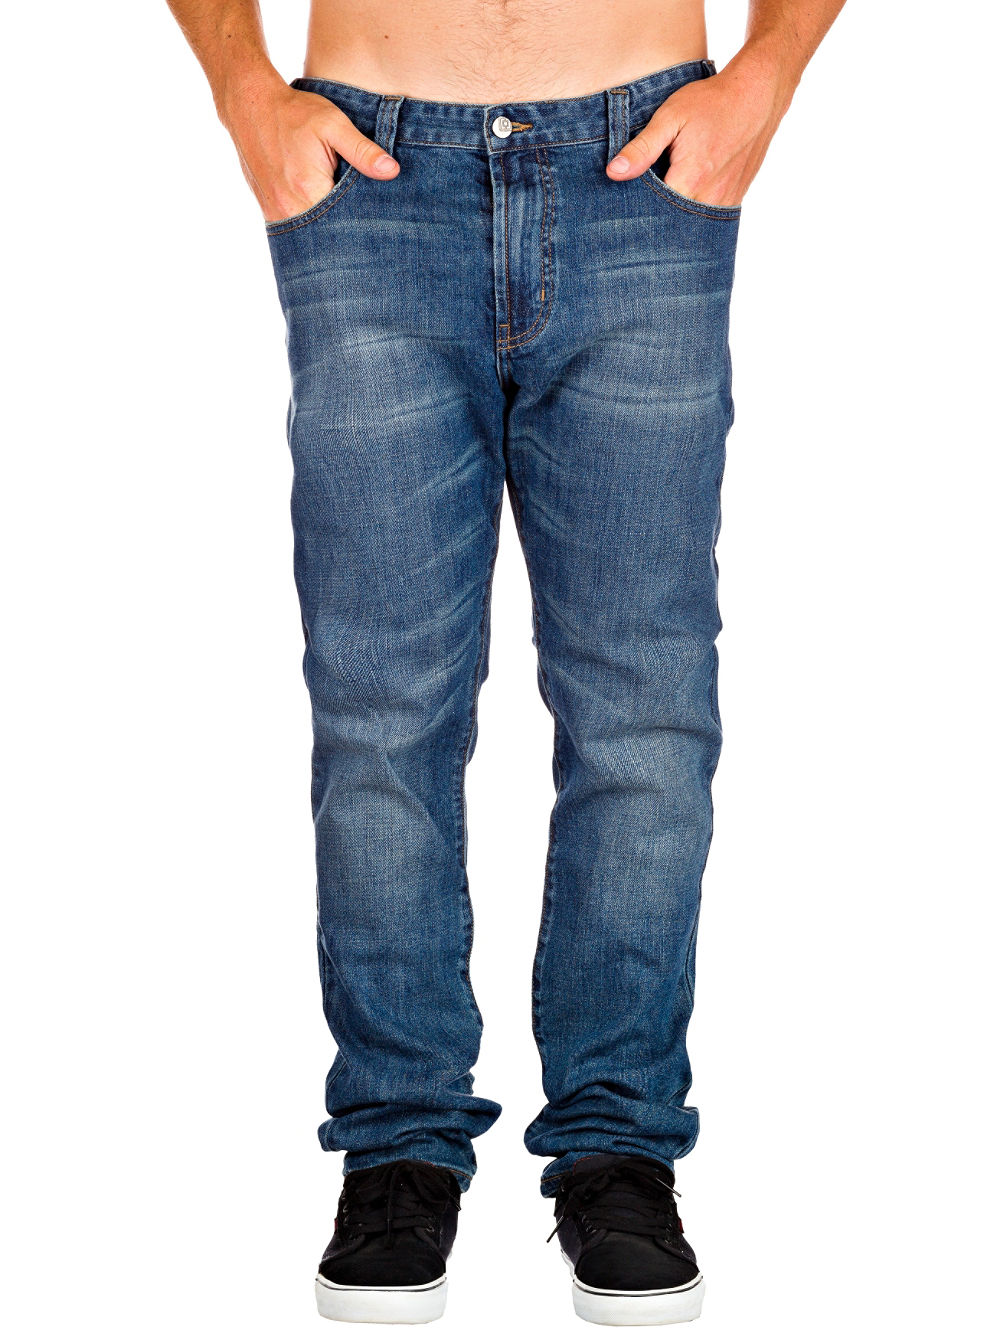 cruise-jeans